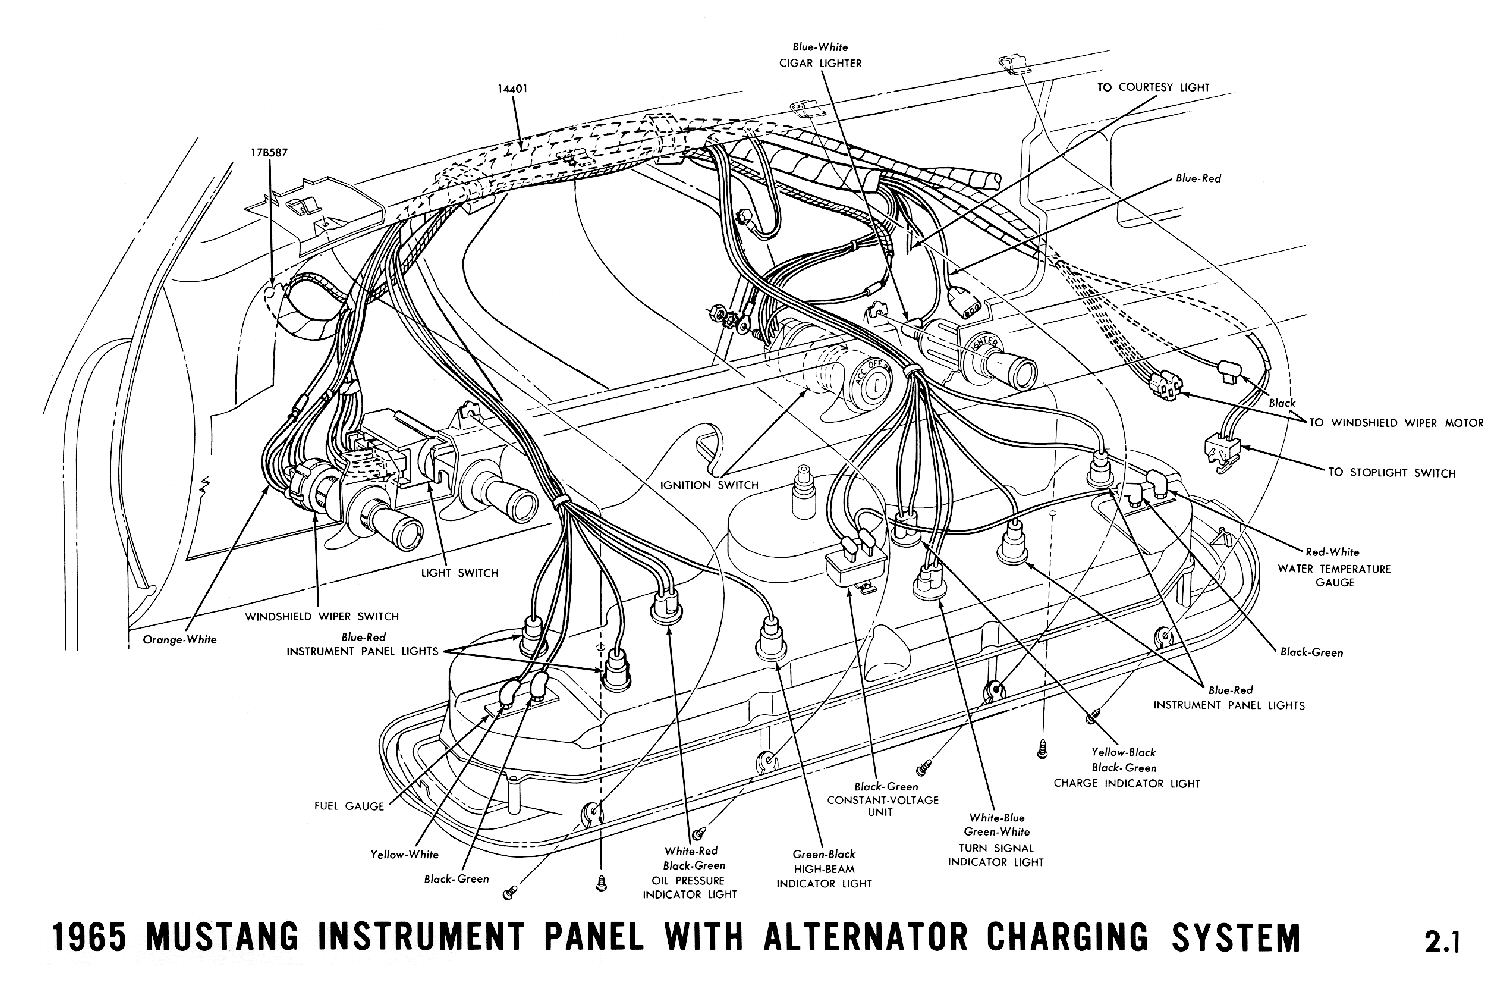 1965a 1965 mustang wiring diagrams average joe restoration 1965 Mustang Restoration Guide at n-0.co